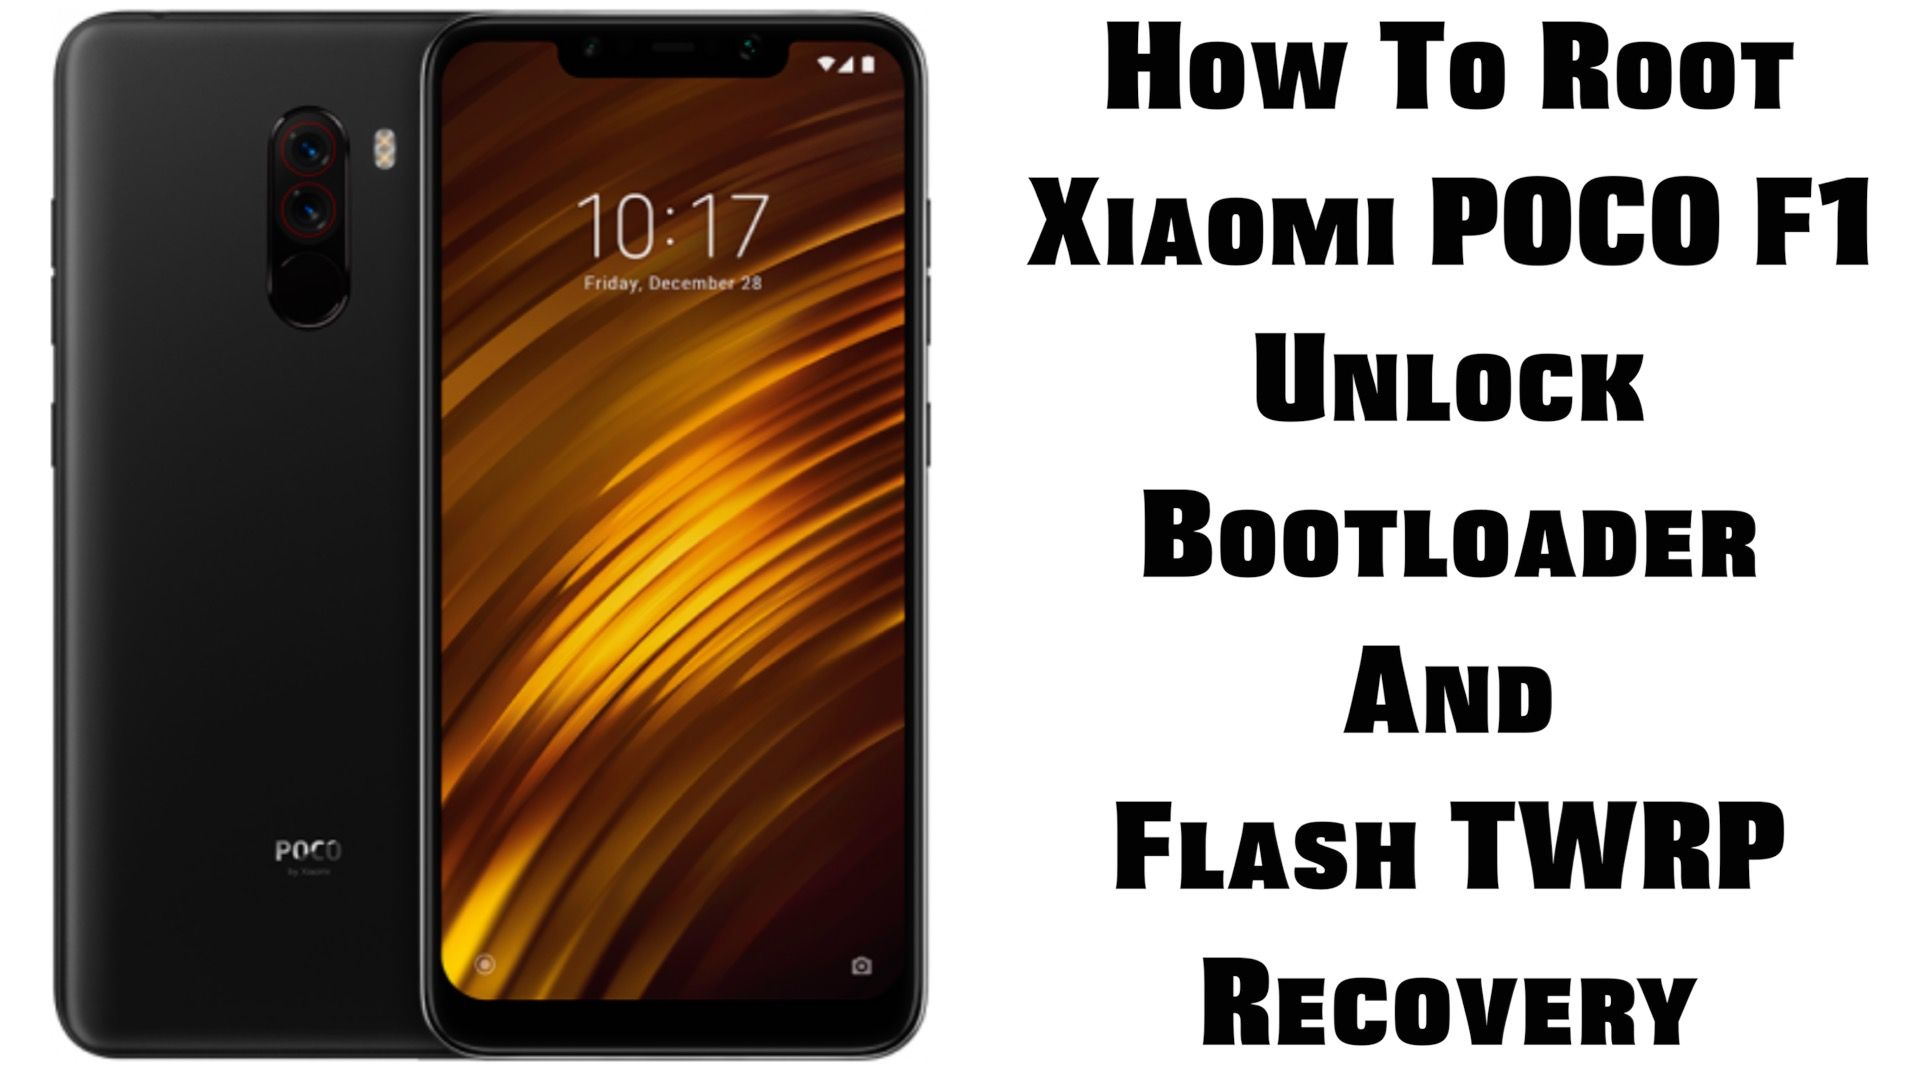 How To Root Xiaomi POCO F1 Unlock Bootloader And Flash TWRP Recovery